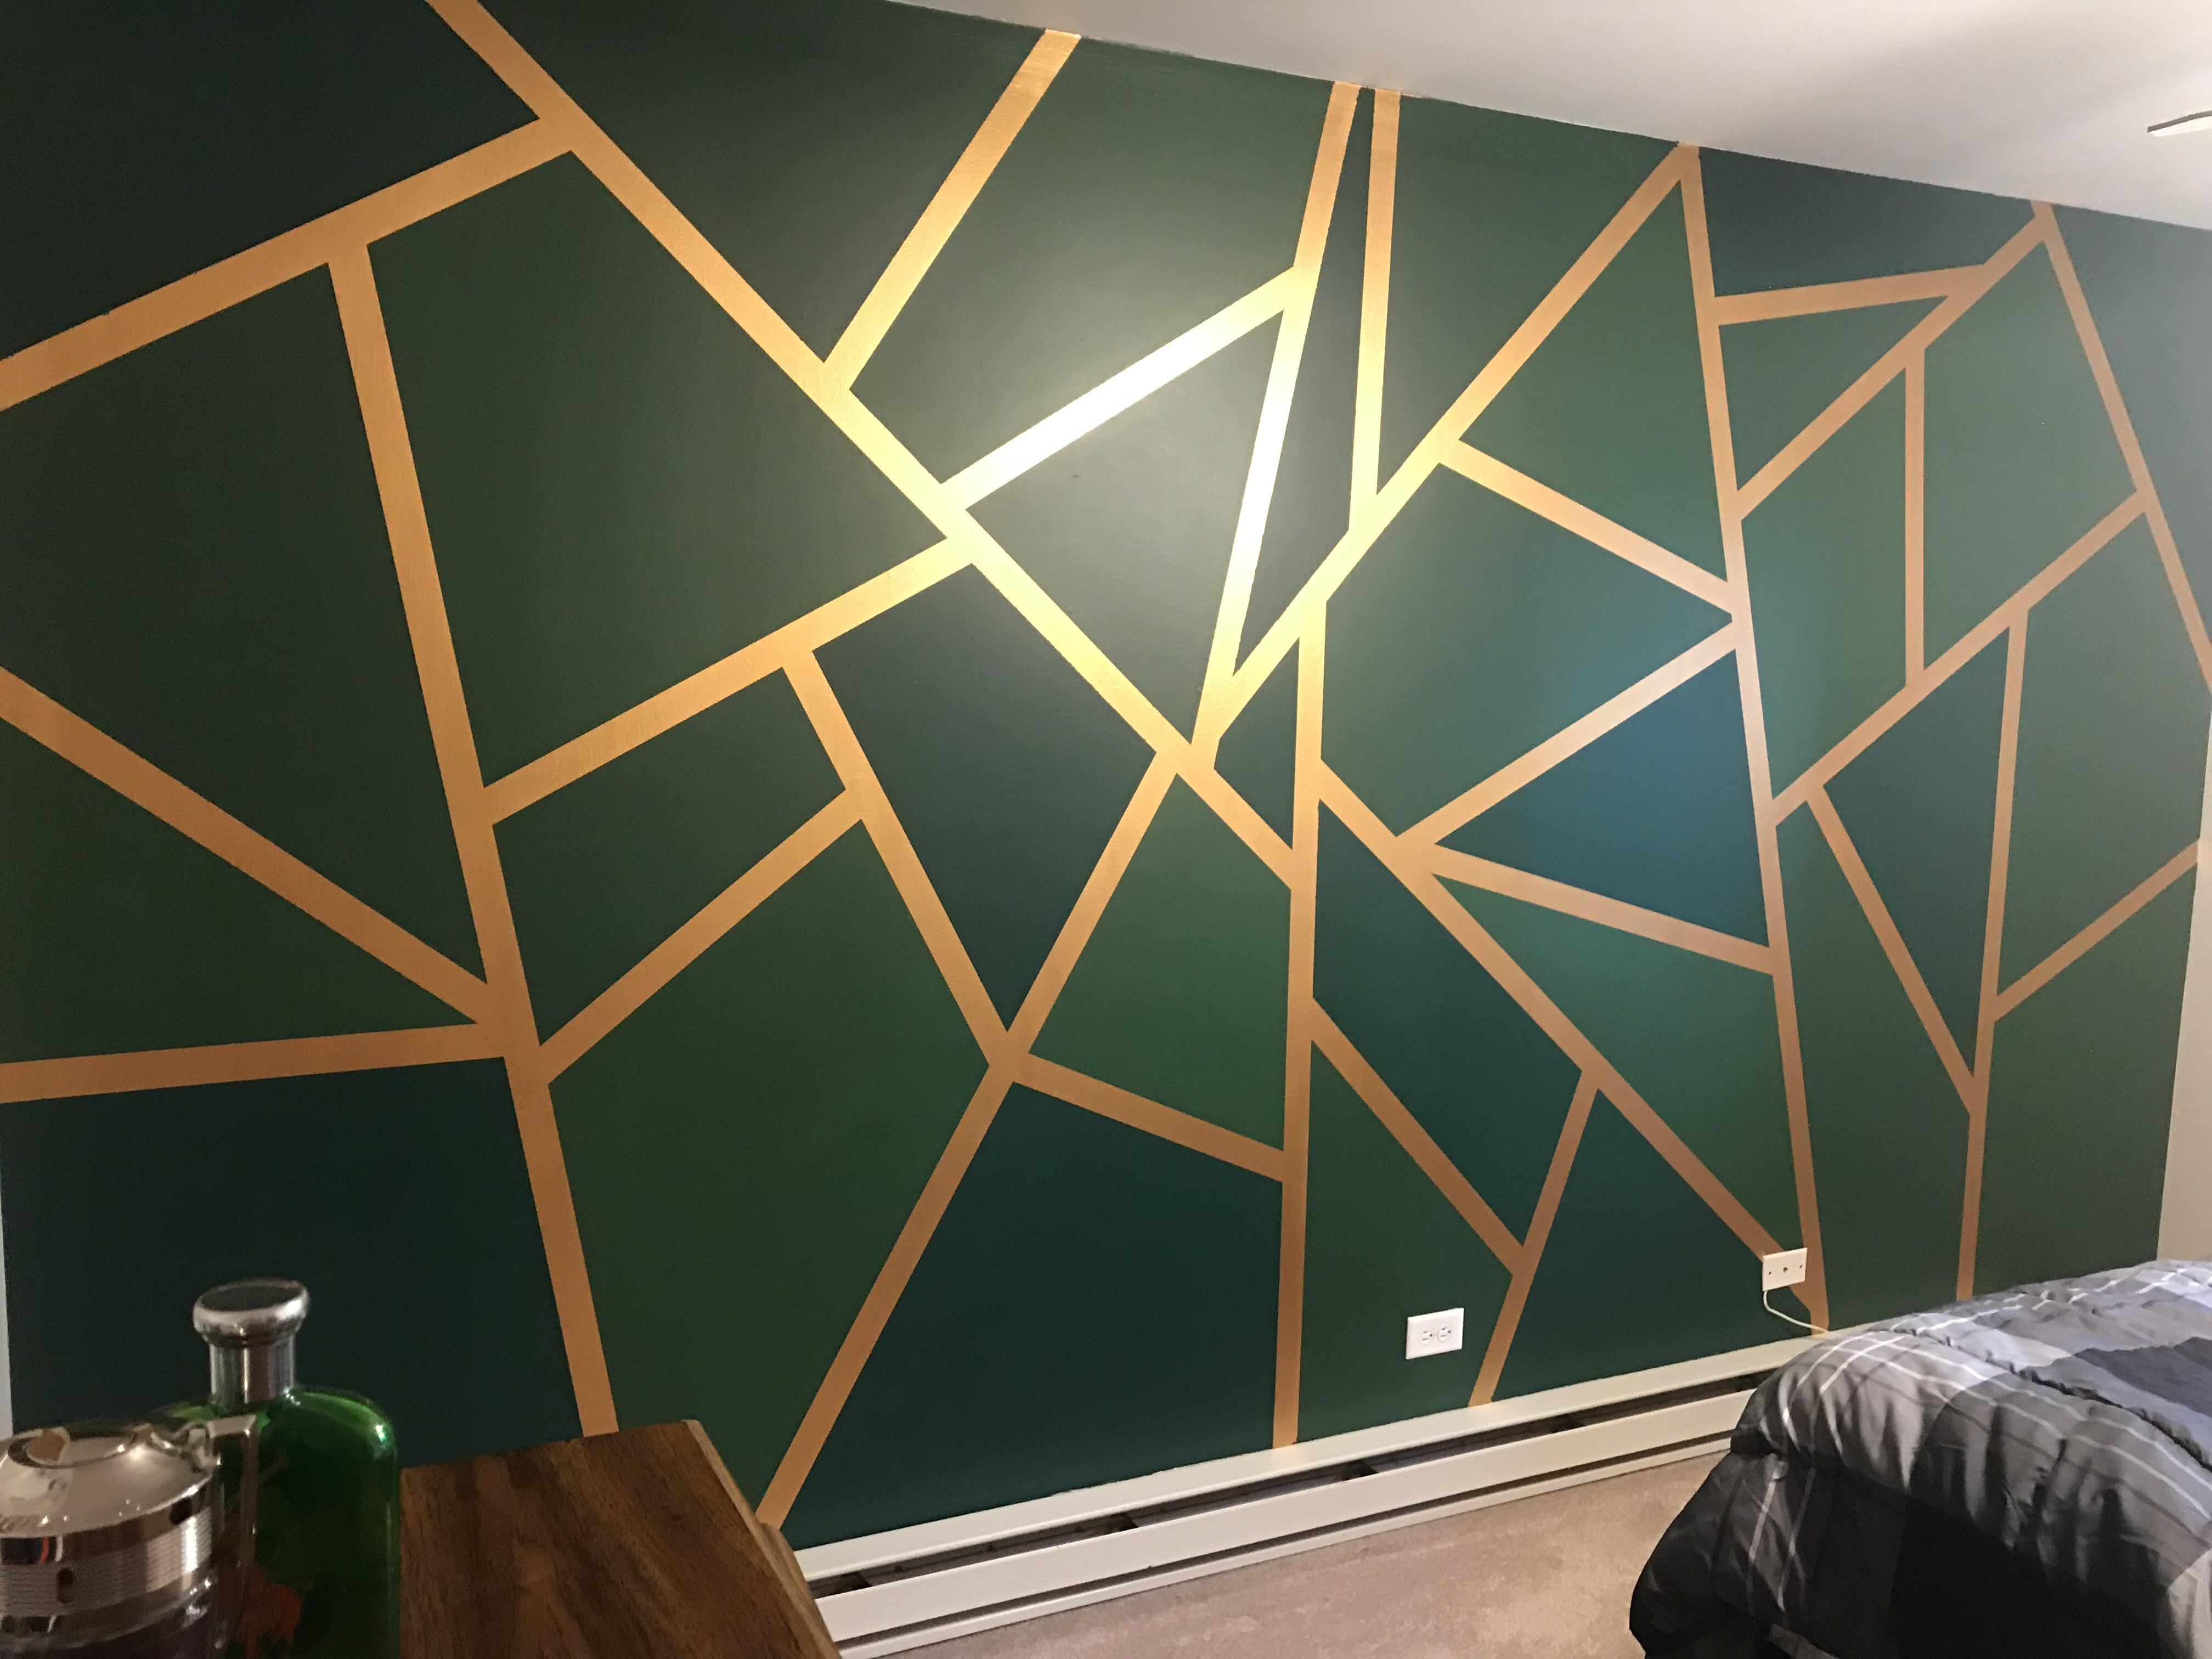 Got some inspiration from a pillow on Pinterest. My geometric wall